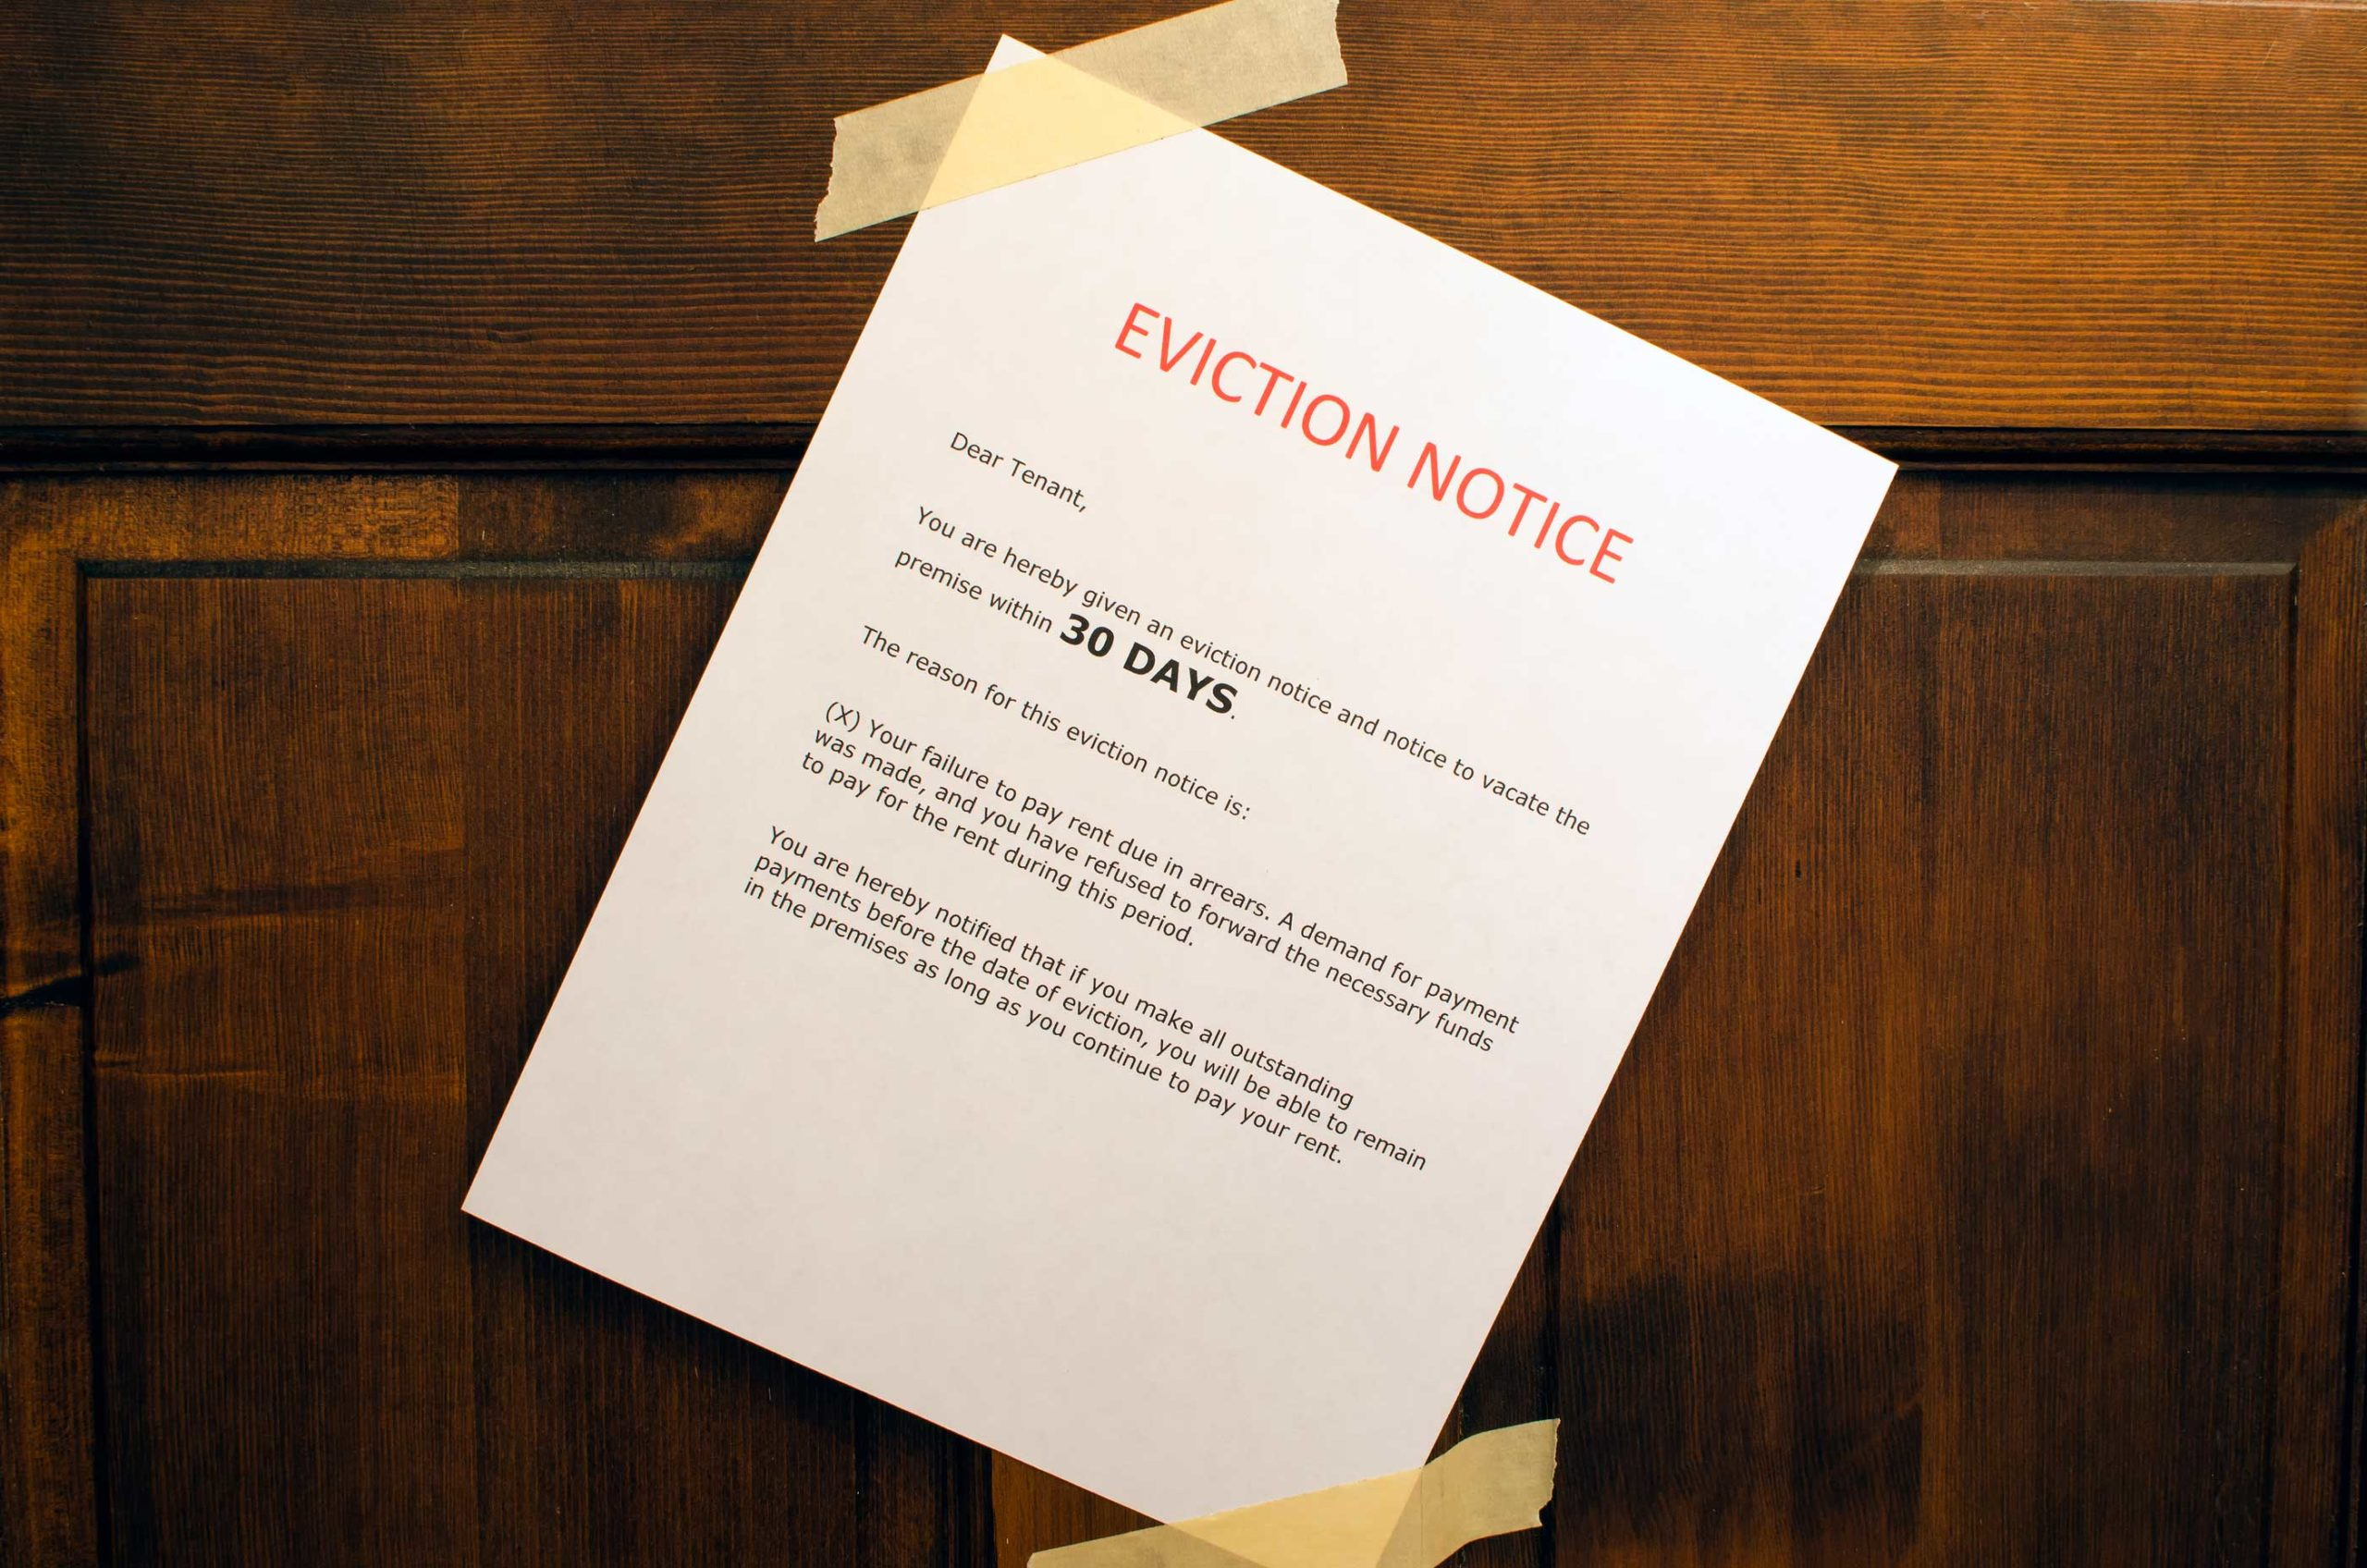 How to Serve 3-Day Eviction Notices